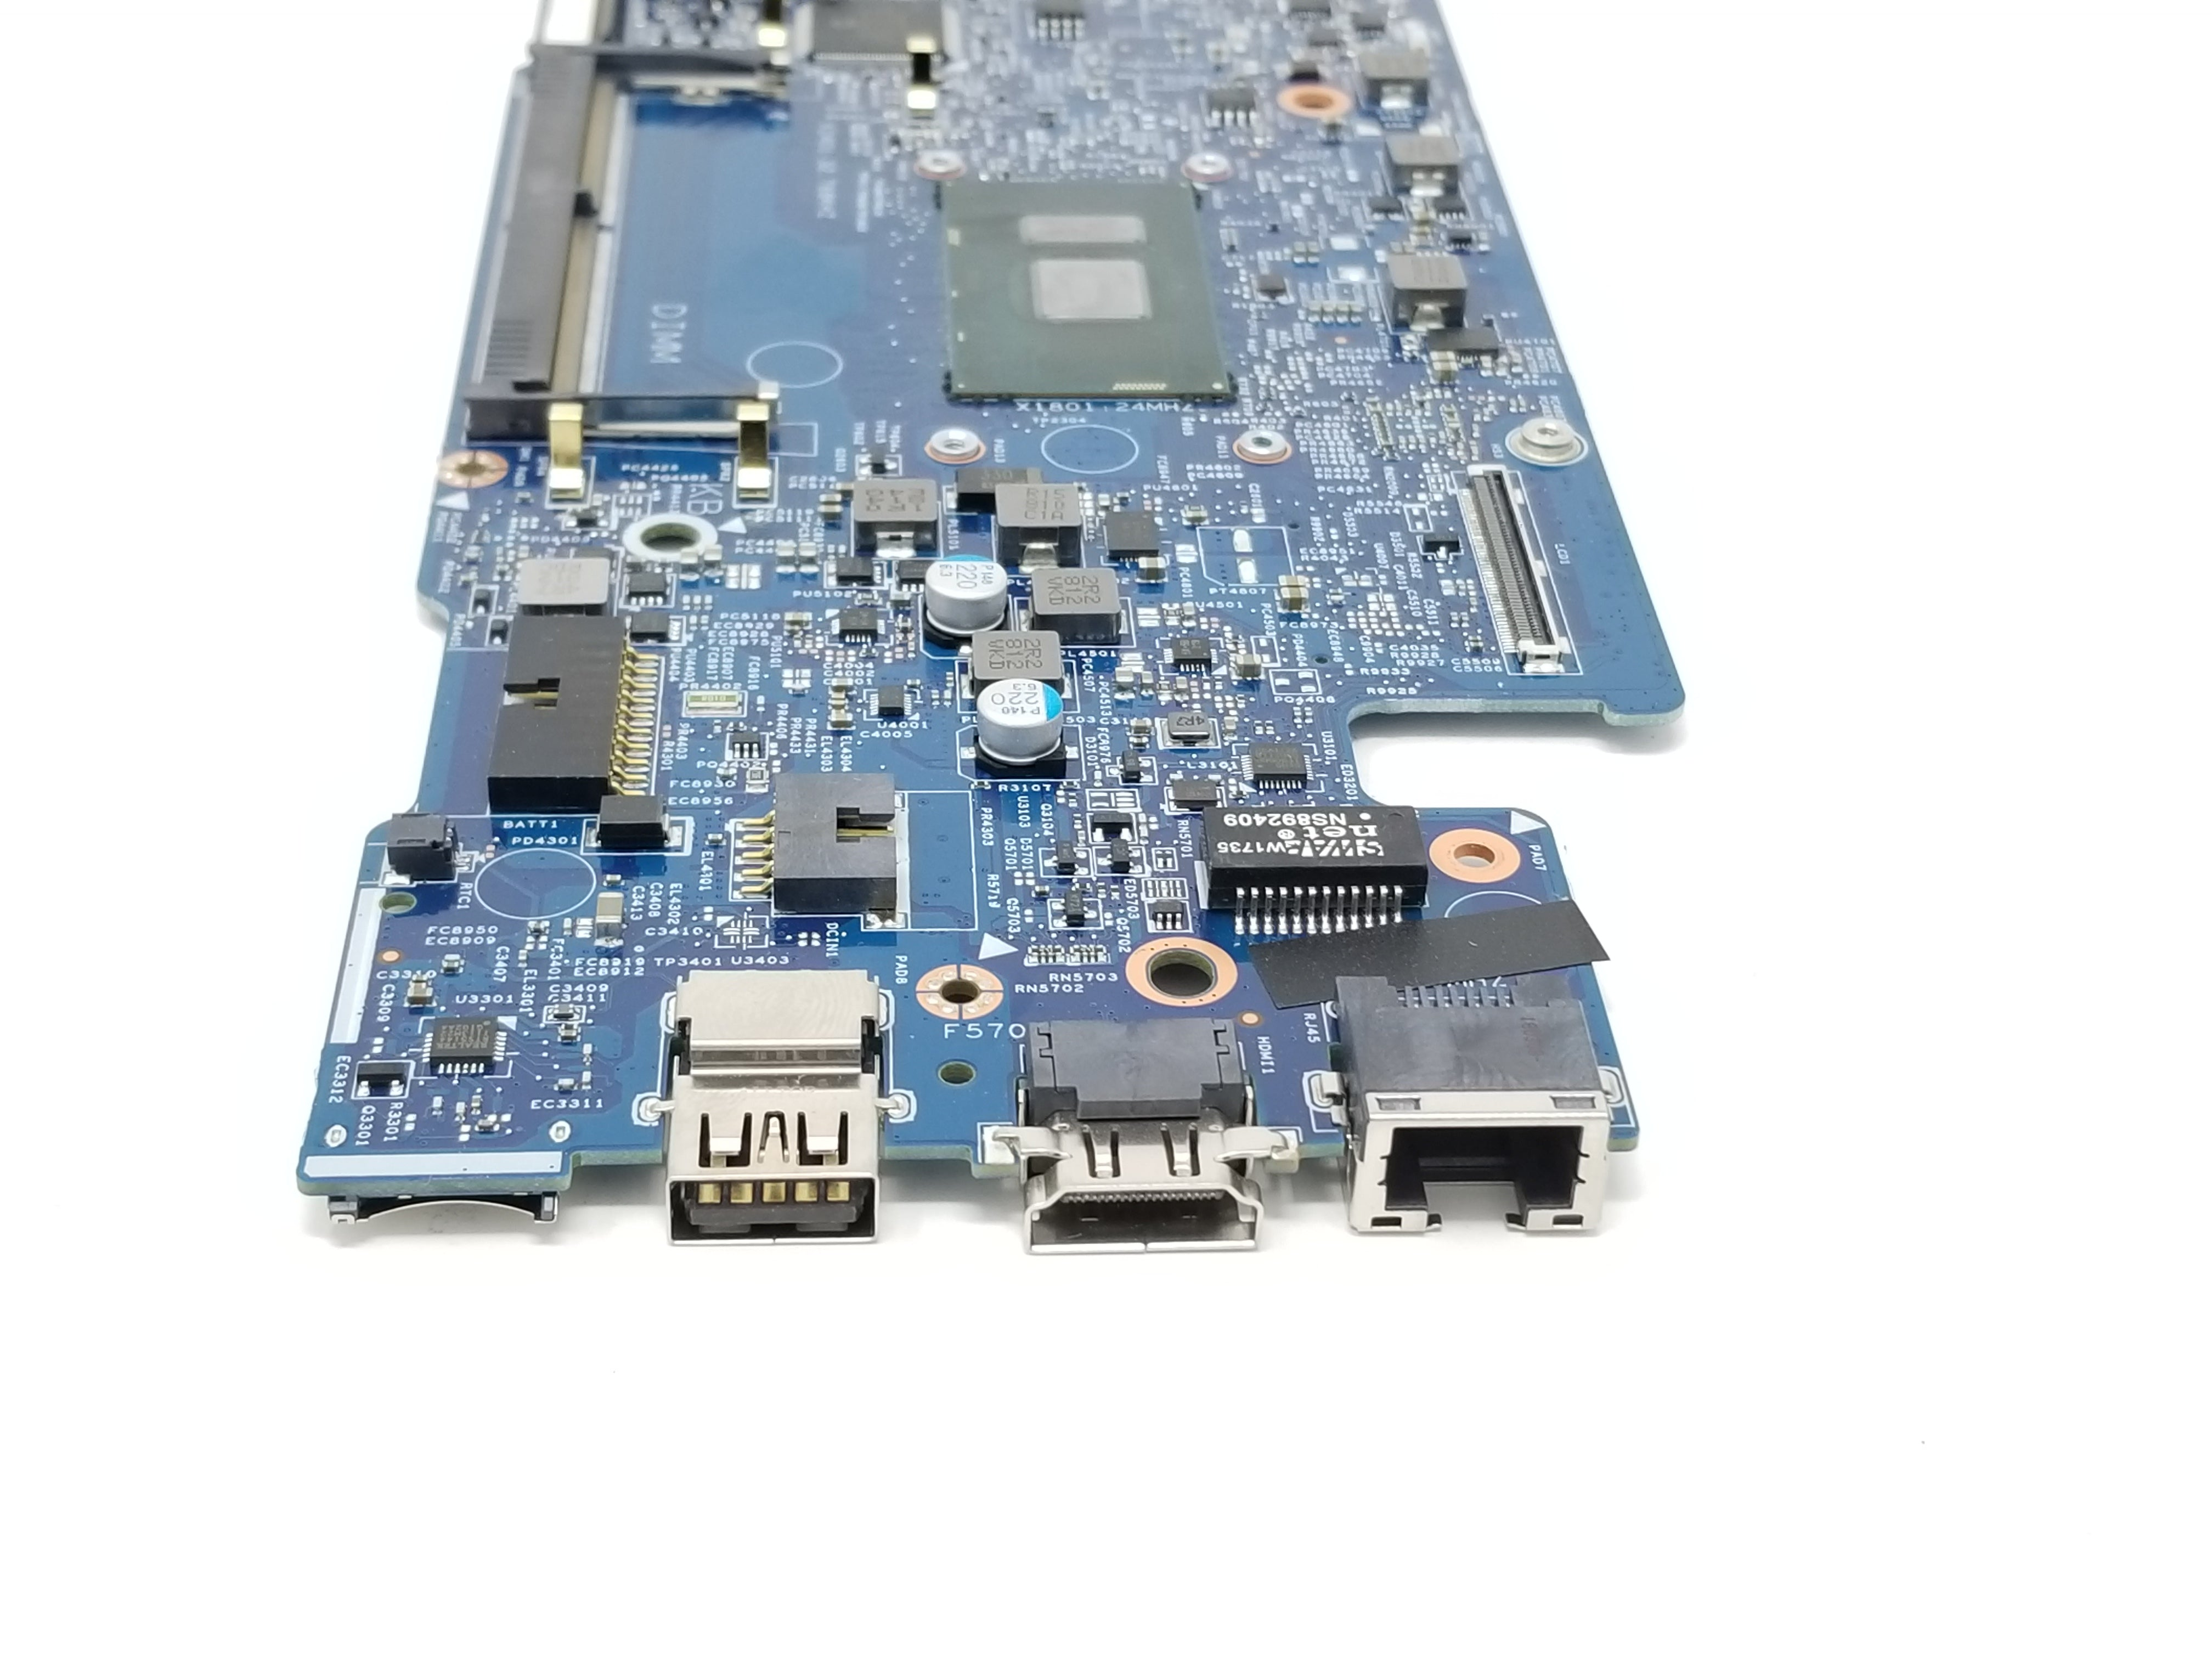 Dell Latitude 13 (3380) Motherboard with Intel Celeron 1.80GHz CPU - 04RR44 / 4550AW010001.